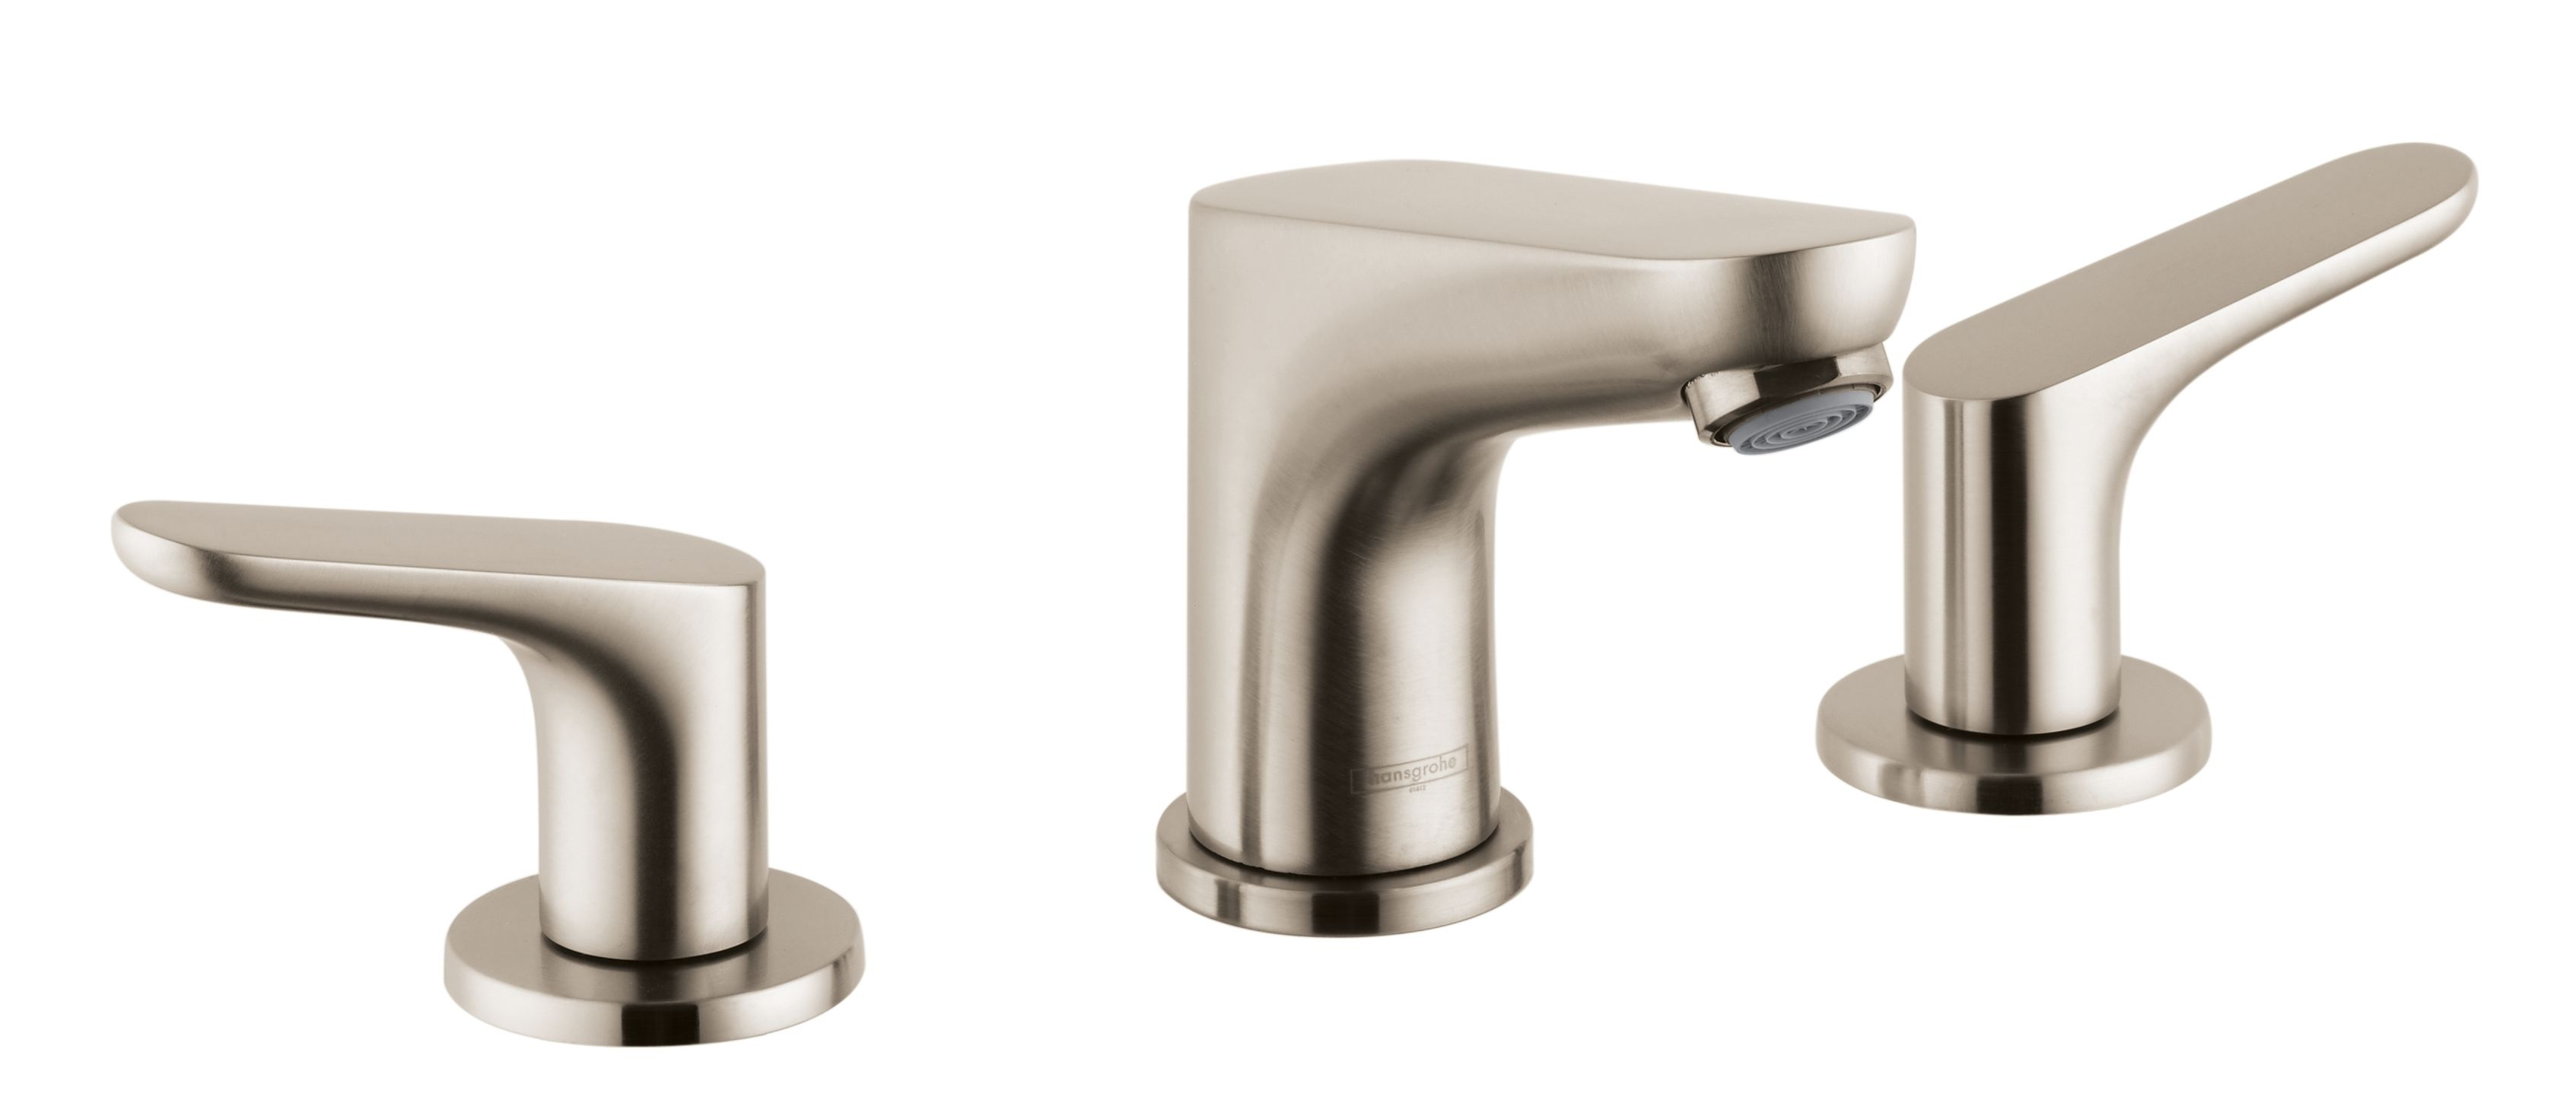 Hansgrohe 04369820 Brushed Nickel Focus 12 Gpm Widespread Bathroom pertaining to dimensions 3386 X 1467